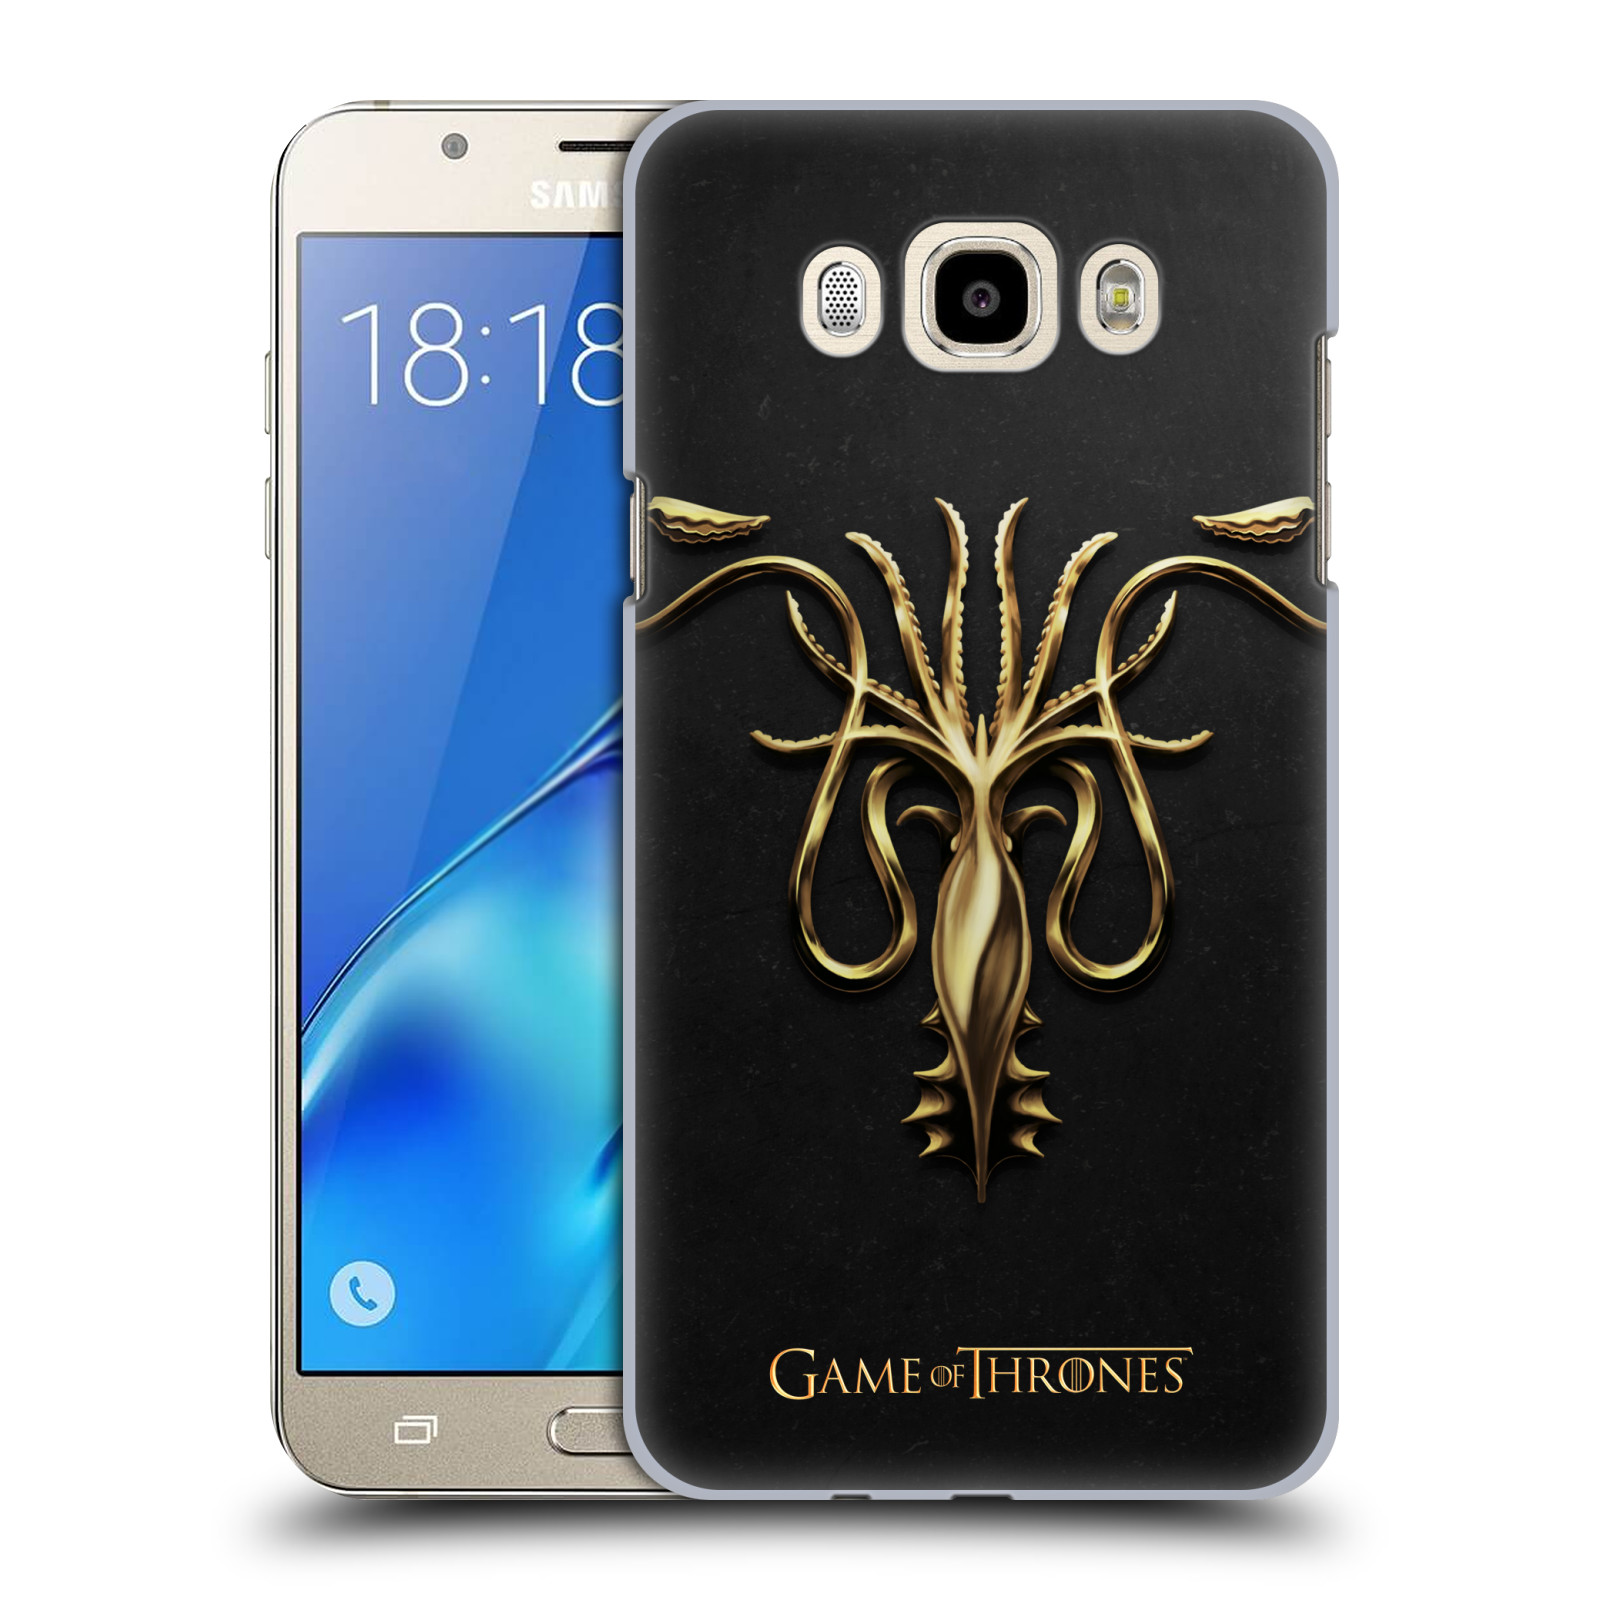 UFFICIALE-HBO-Game-of-Thrones-in-rilievo-ANGELO-HARD-BACK-CASE-per-SAMSUNG-telefoni-3